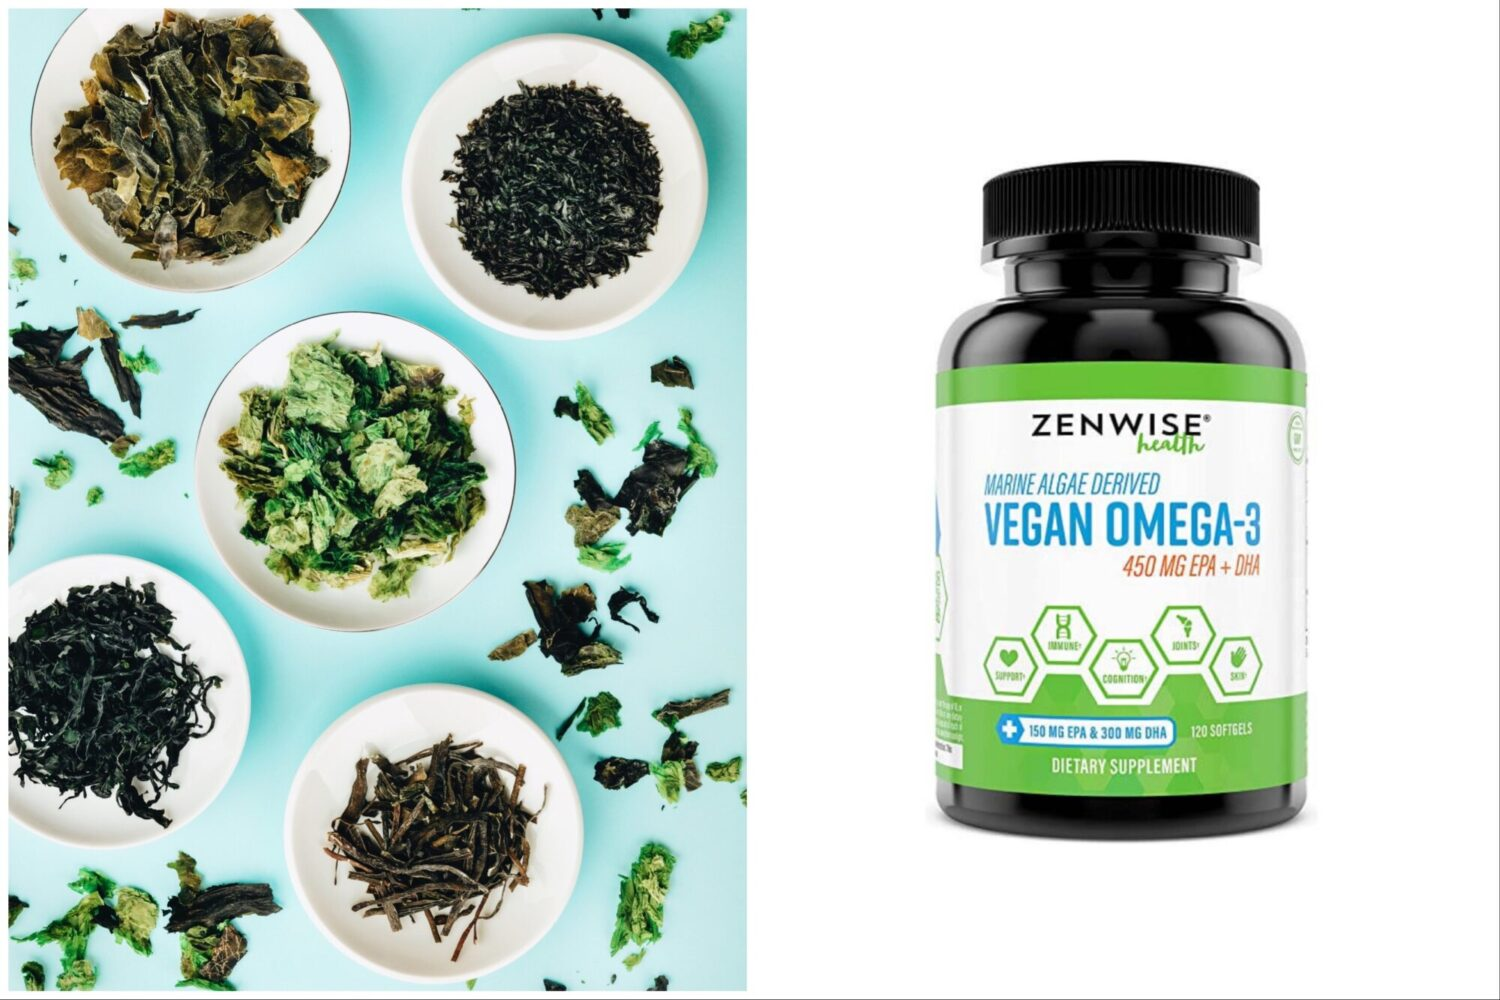 The 9 best vegan omega-3 food sources with the highest fatty acid content